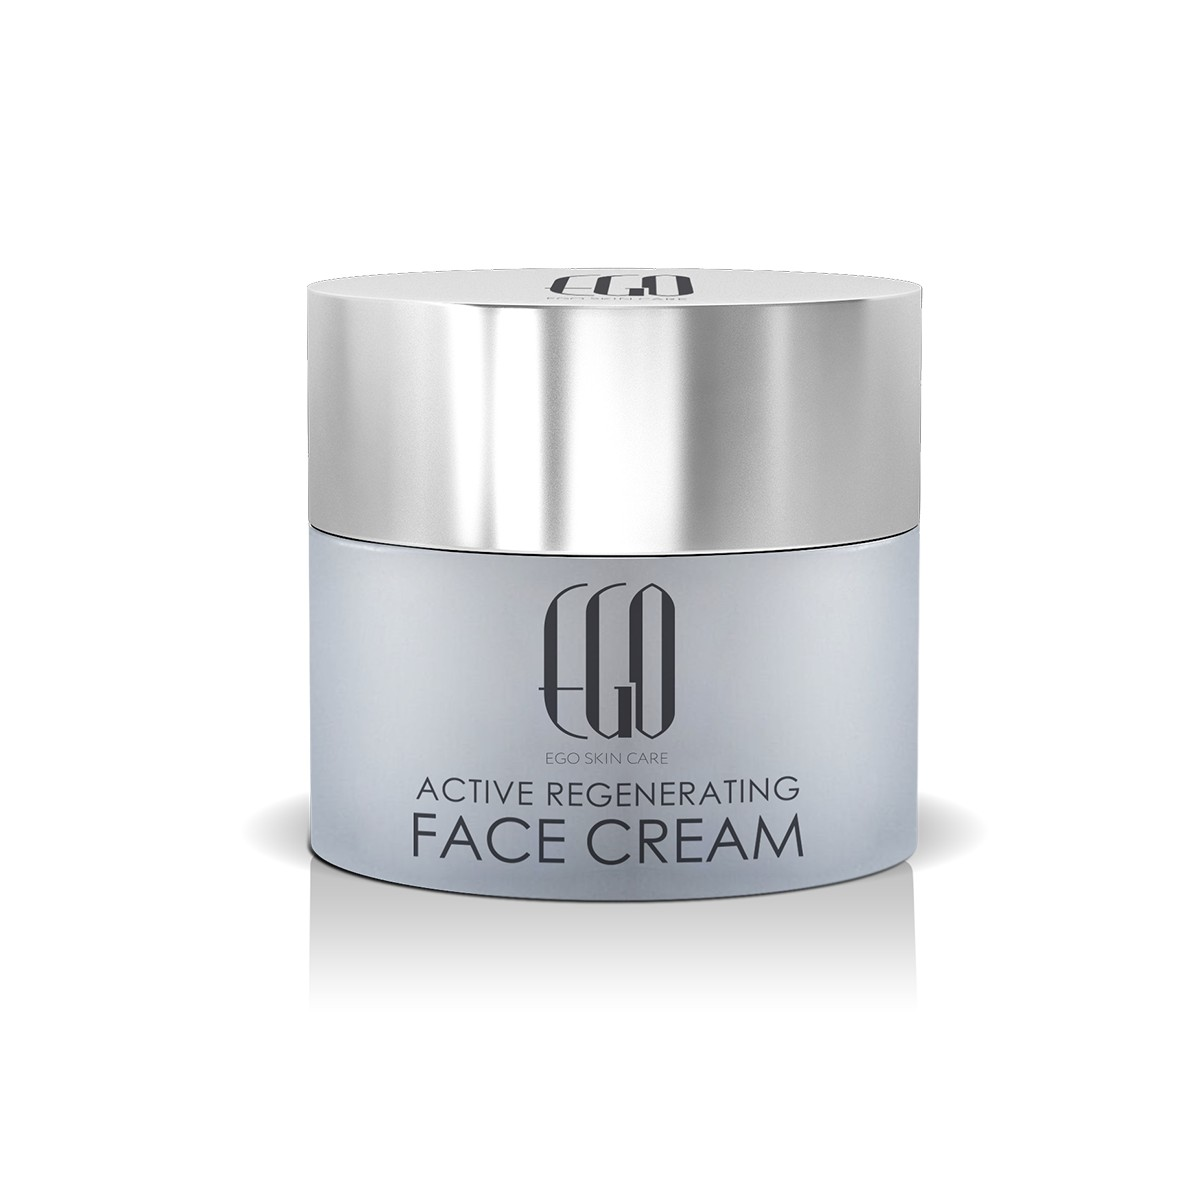 Day and night face cream